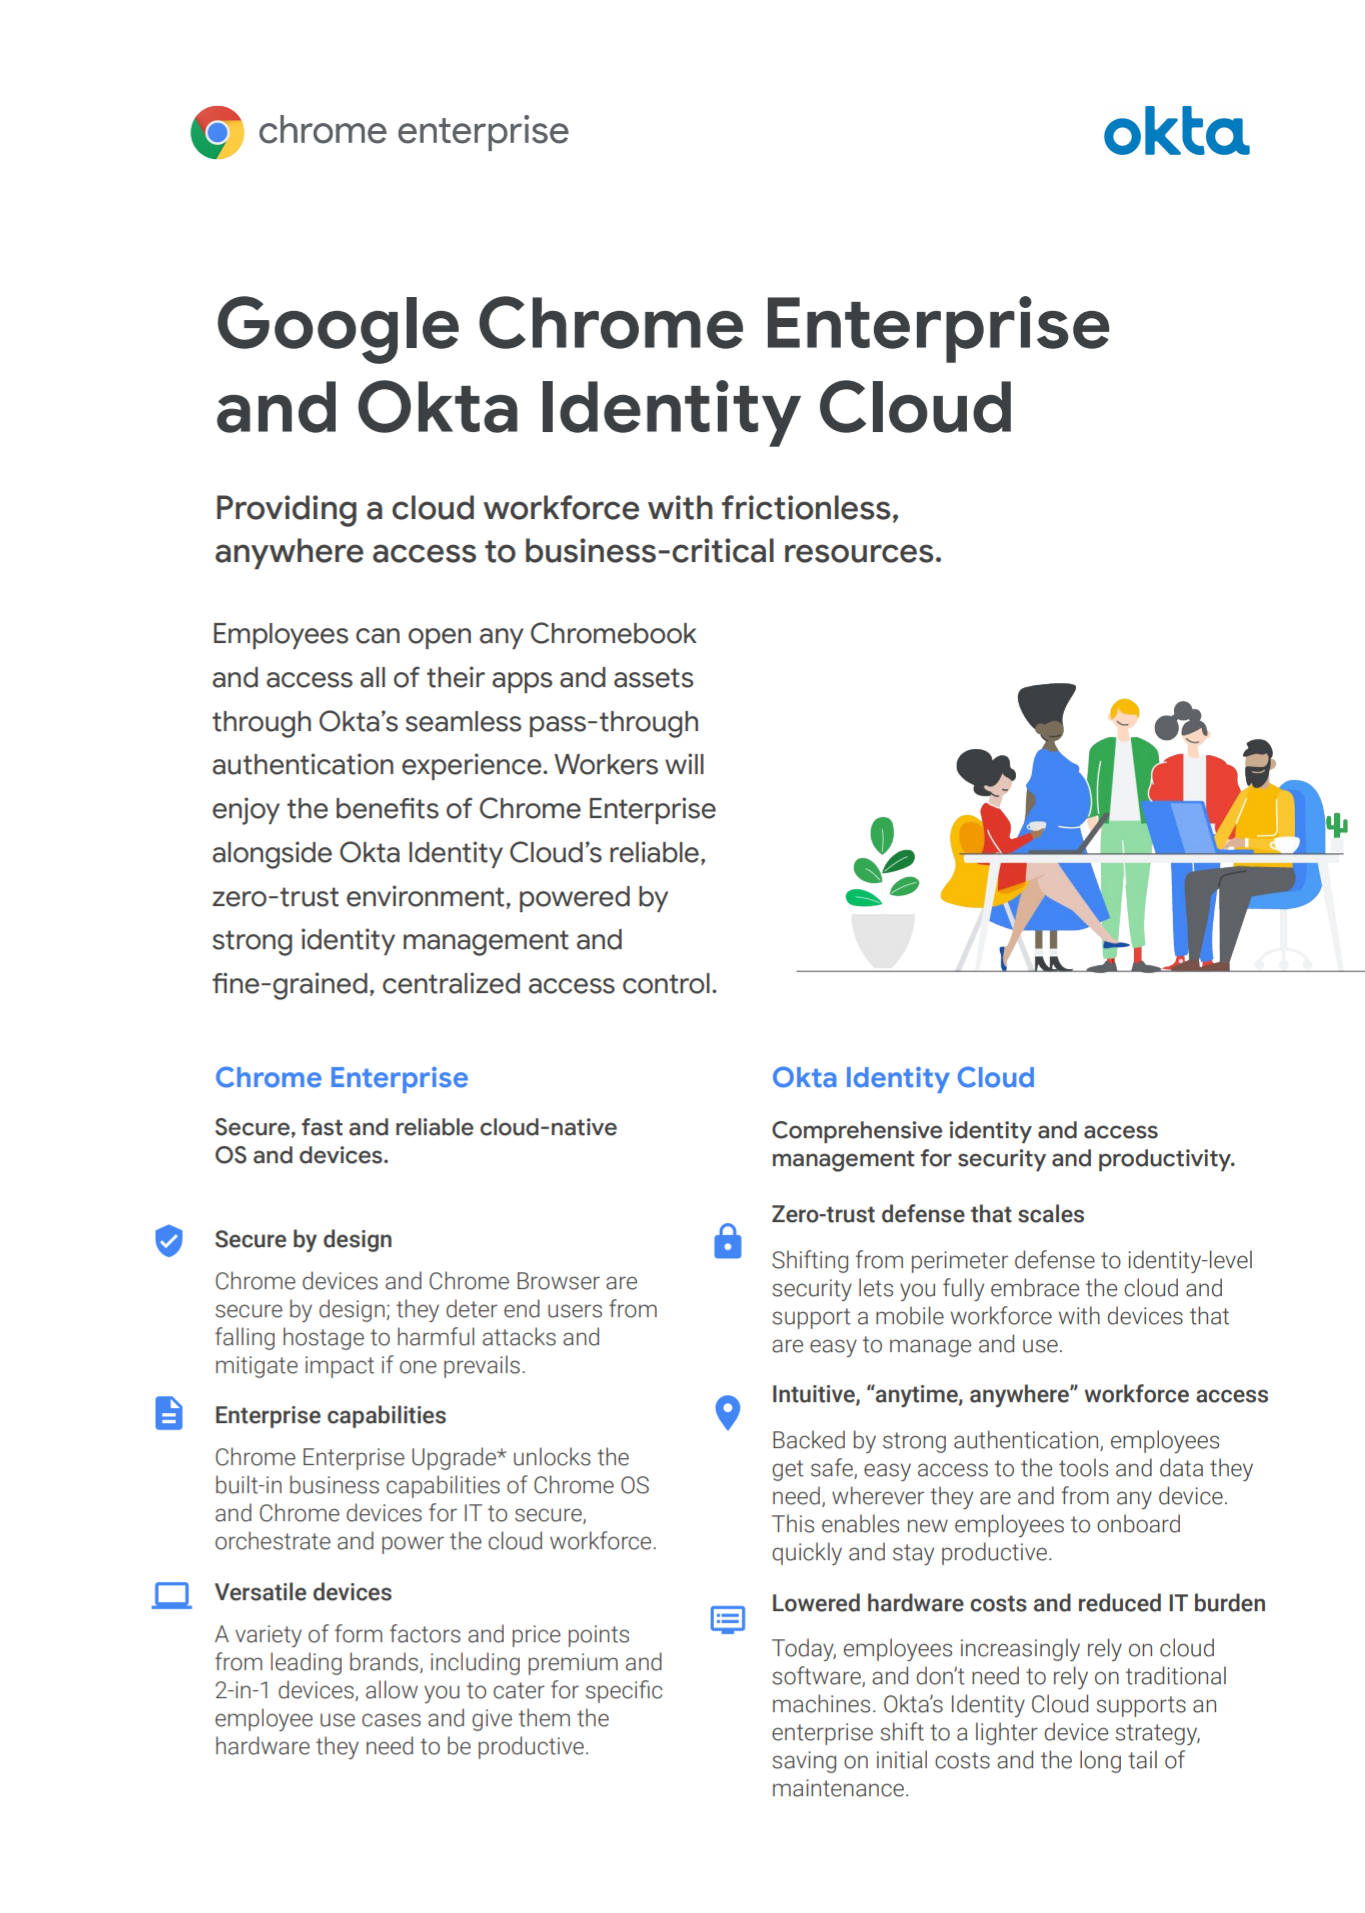 Okta and Chrome Enterprise provide a cloud workforce with frictionless, anywhere access to business-critical resources.